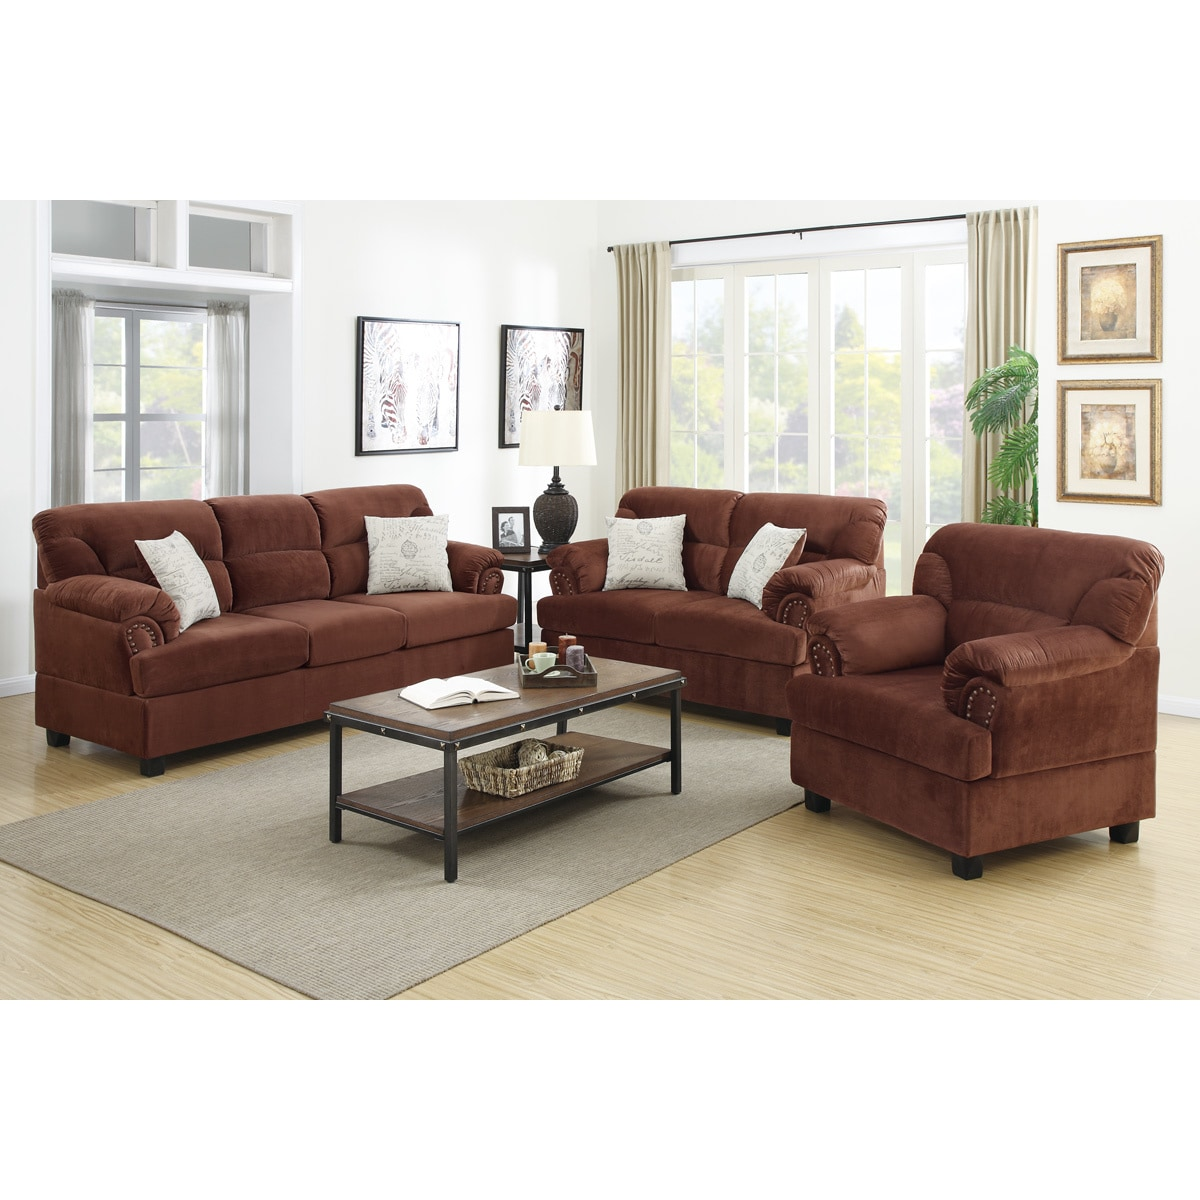 Junik 3 piece living room set in microfiber overstock shopping big discounts on living room sets for 8 piece living room set